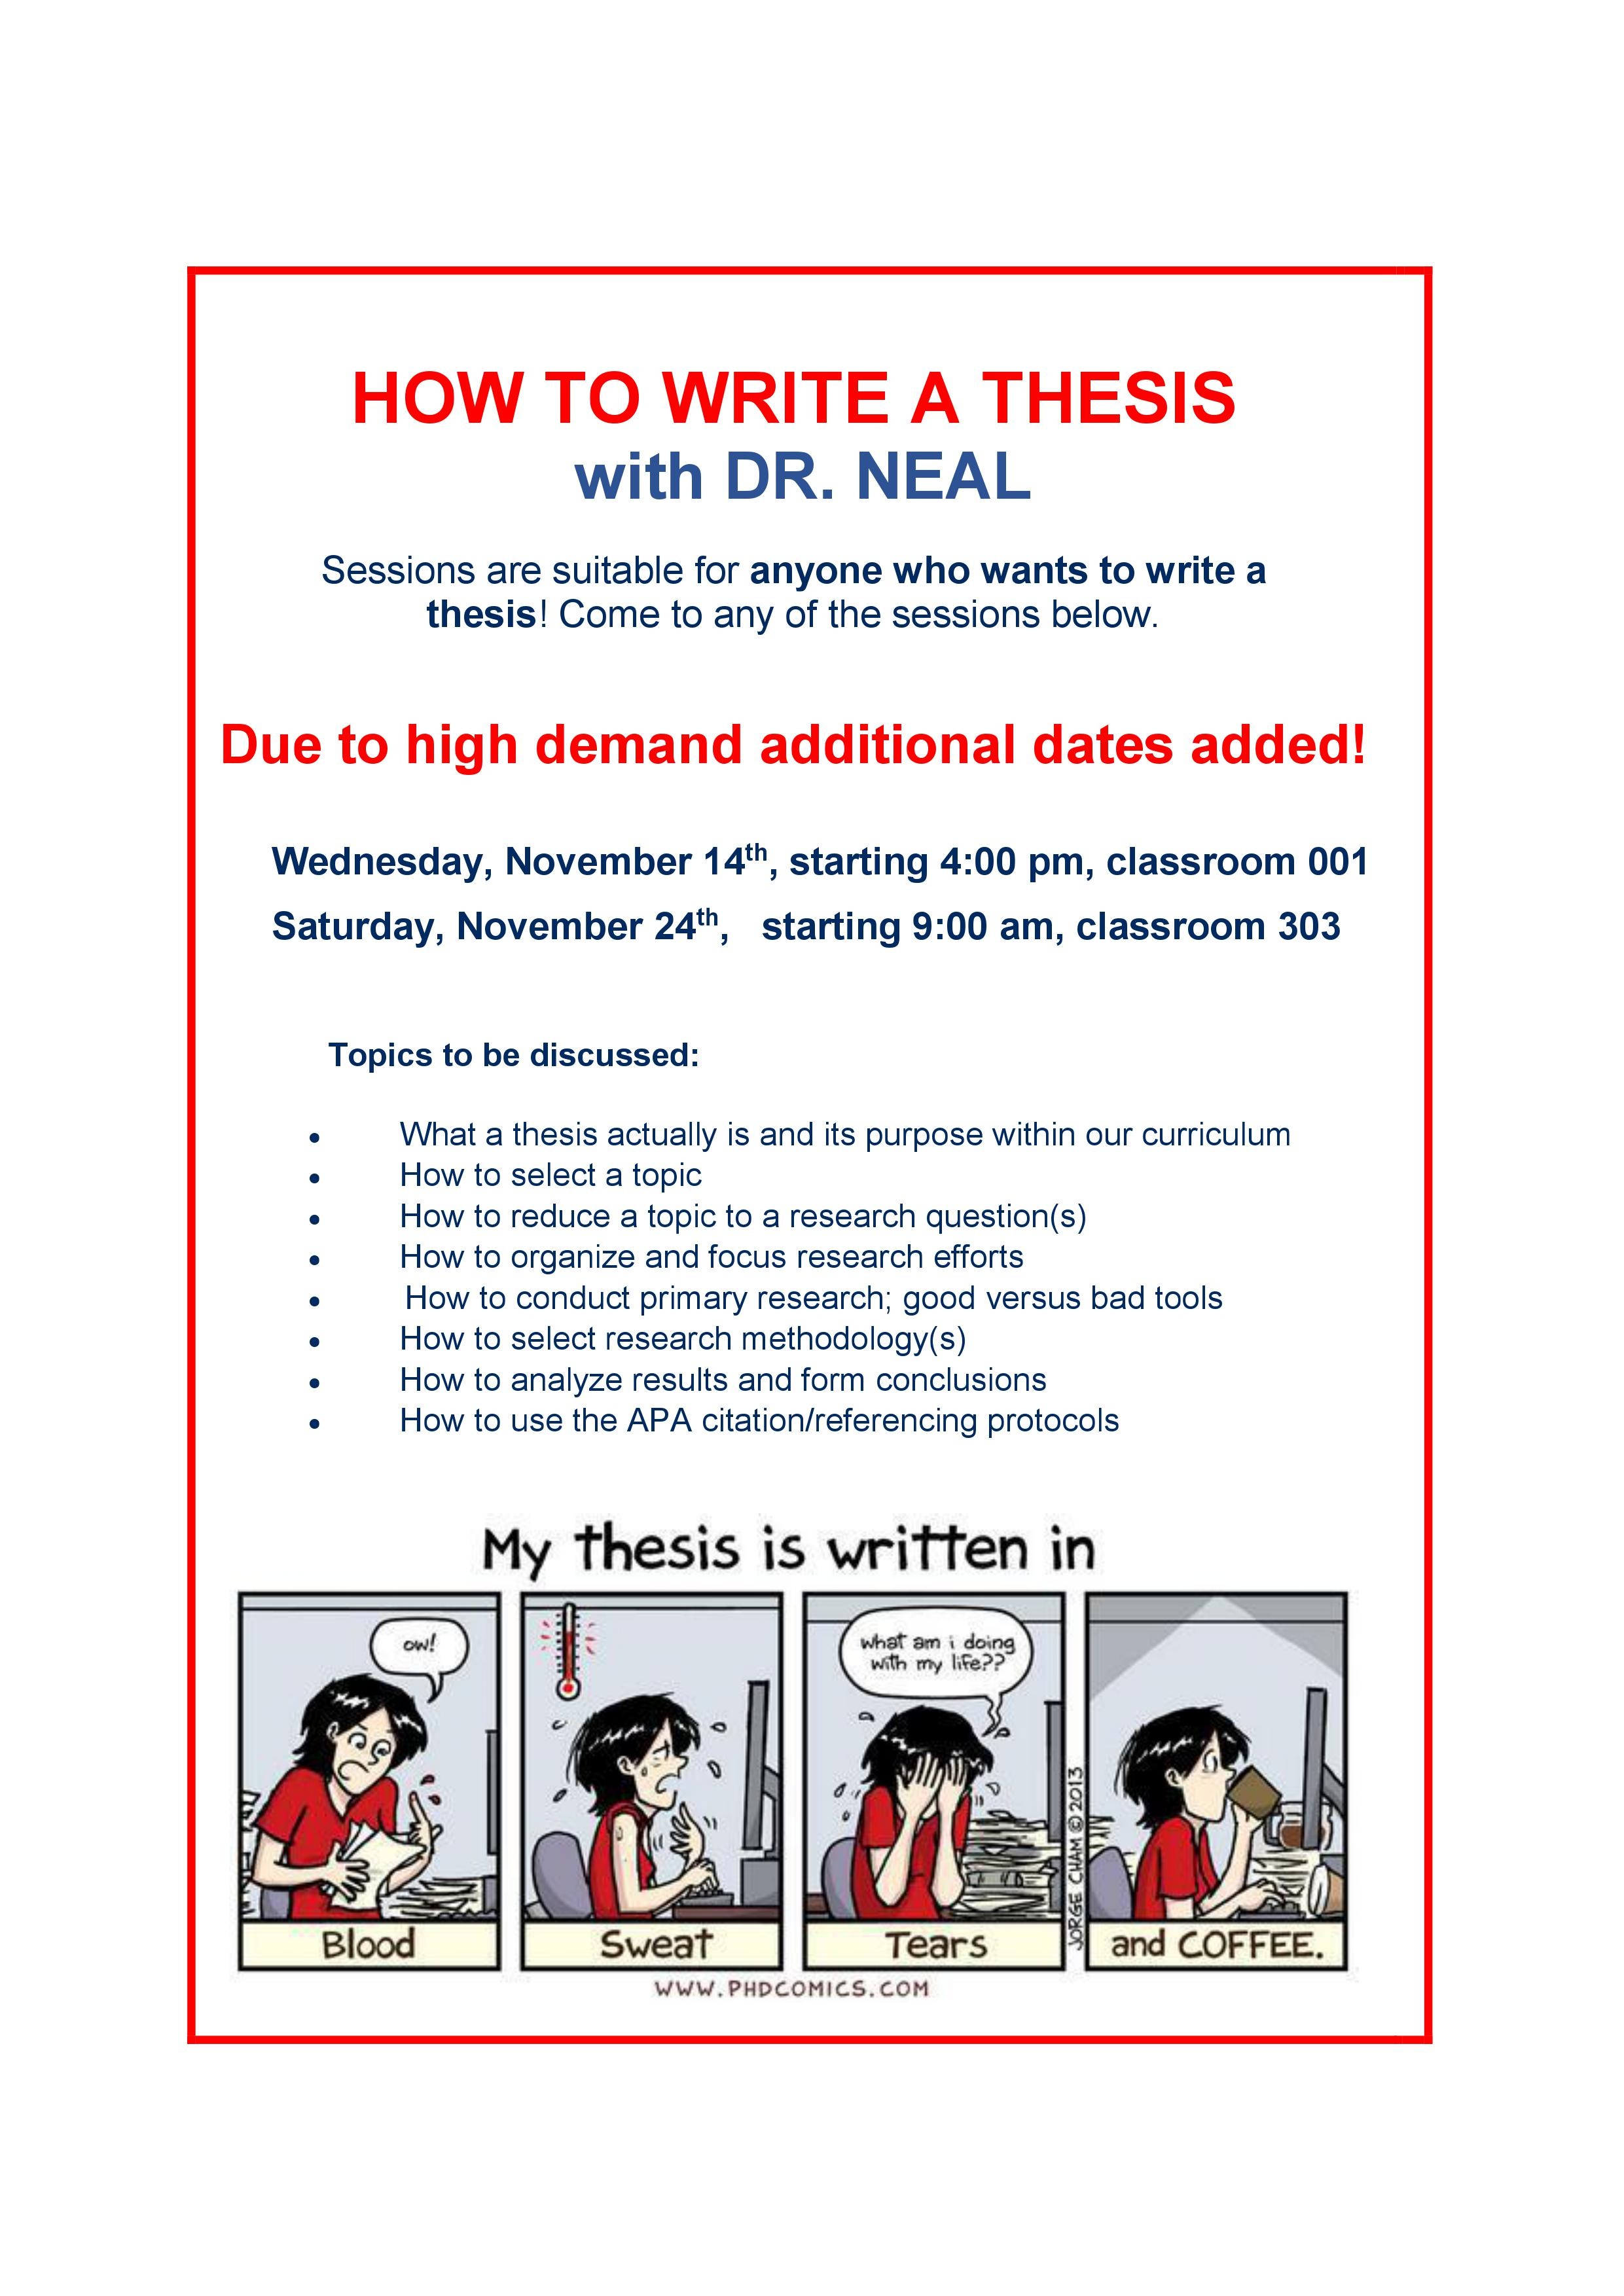 How to write a thesis - new sessions added Nov 14, 16:00, 001 and Nov 24, 9:00, 303